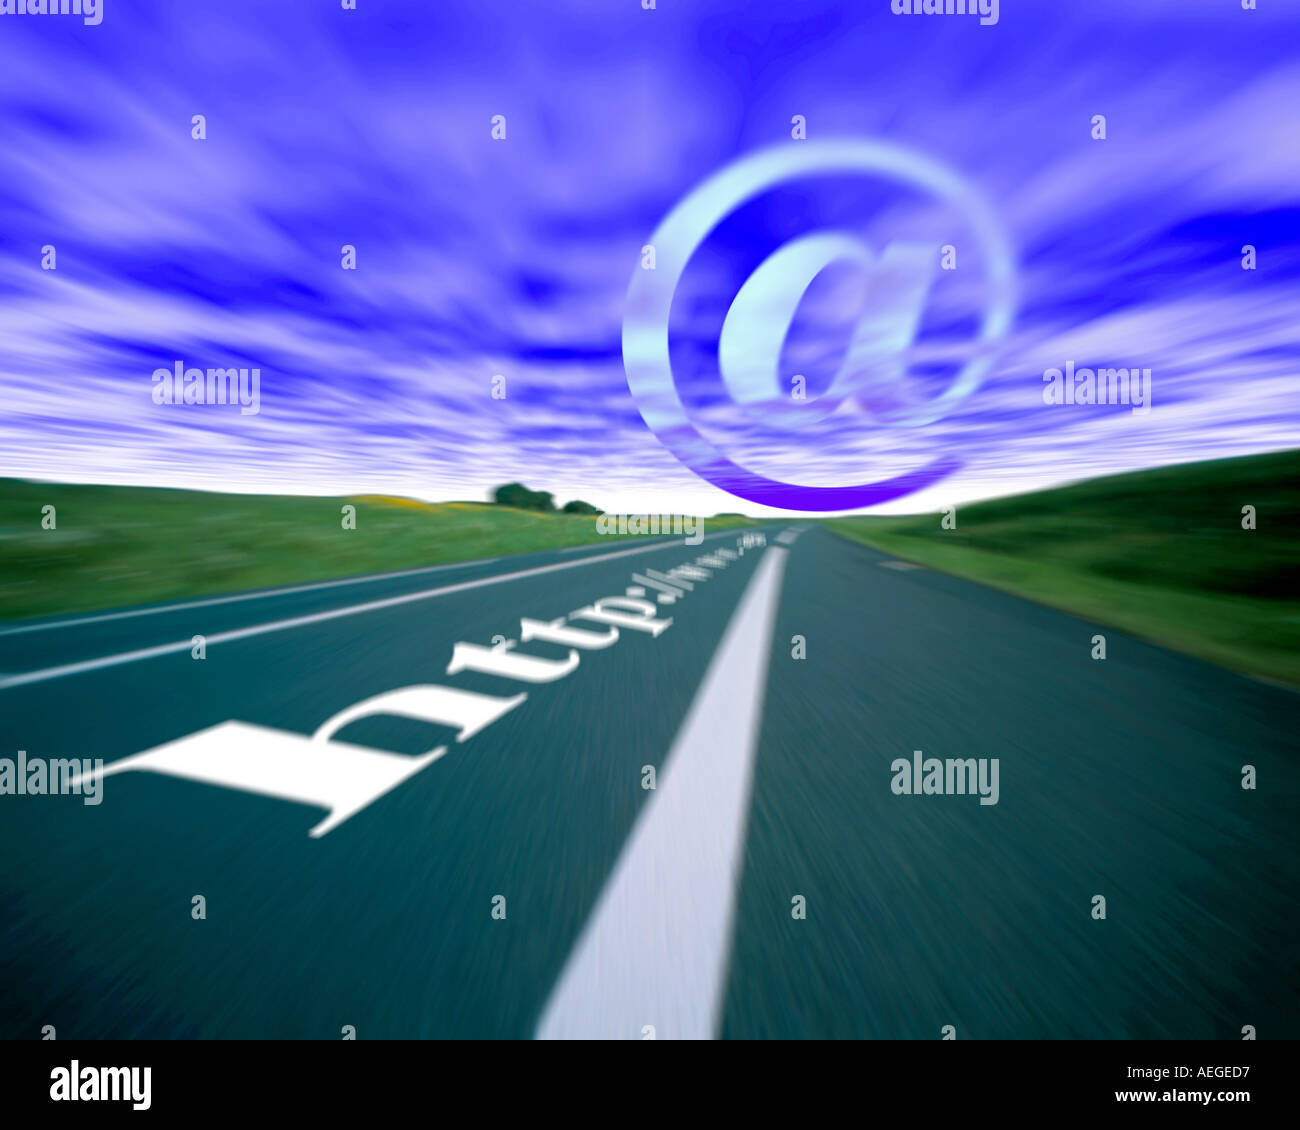 Office road highway perspective motion speed conectivity blur destination objective internet www world wide web direction libert - Stock Image